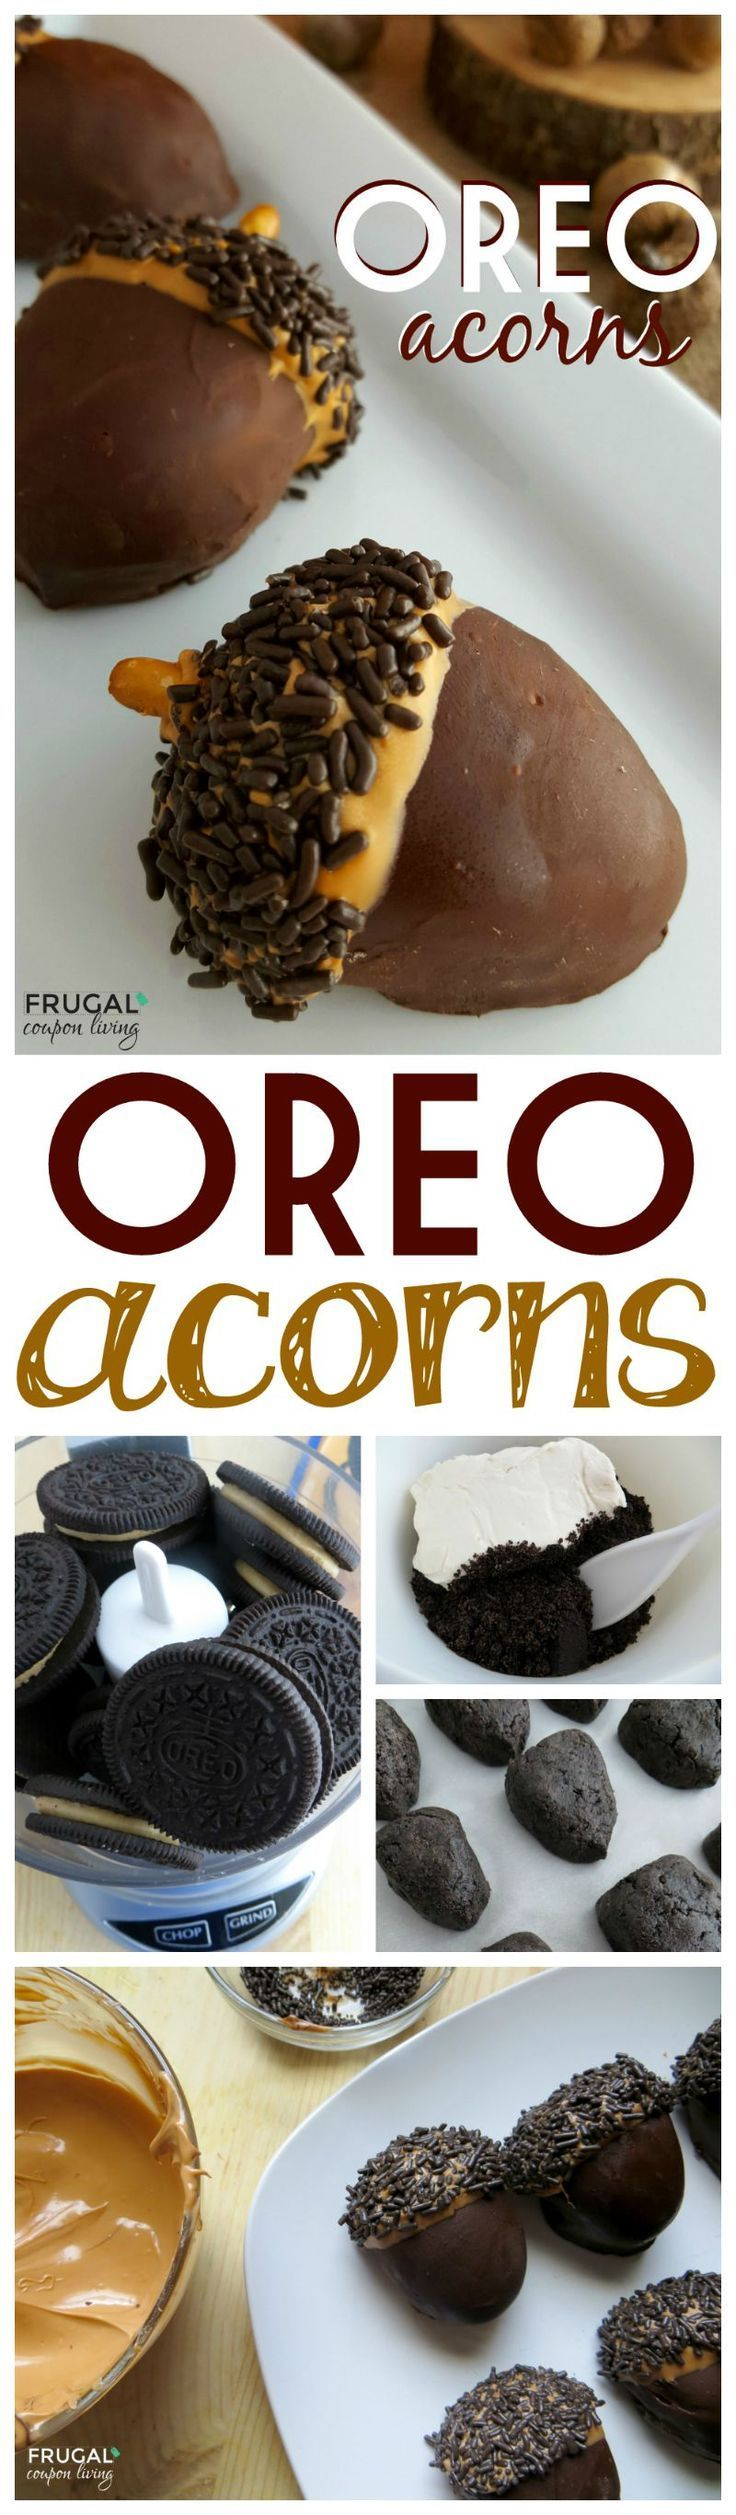 Fall Kid's Food Craft - easy to make Edible OREO Acorns. This is a great fall recipe for kids, they would be adorable at the Thanksgiving Dessert Table!